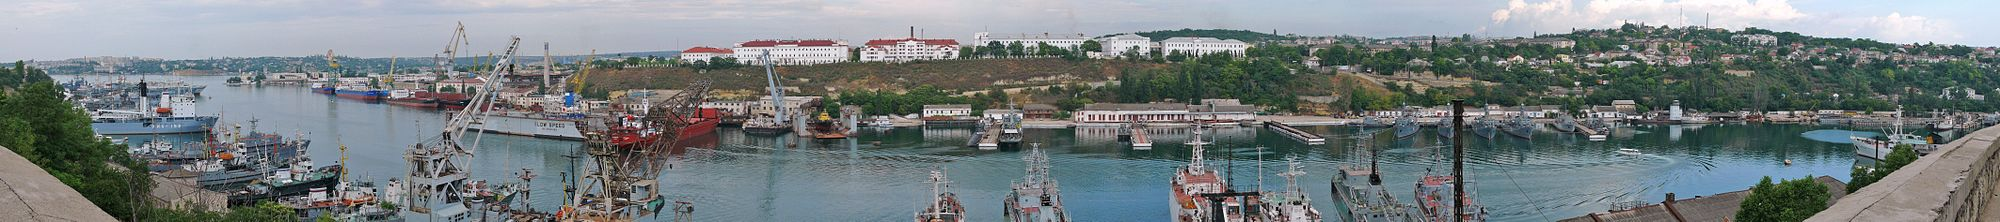 Sevastopol-city,port.jpg